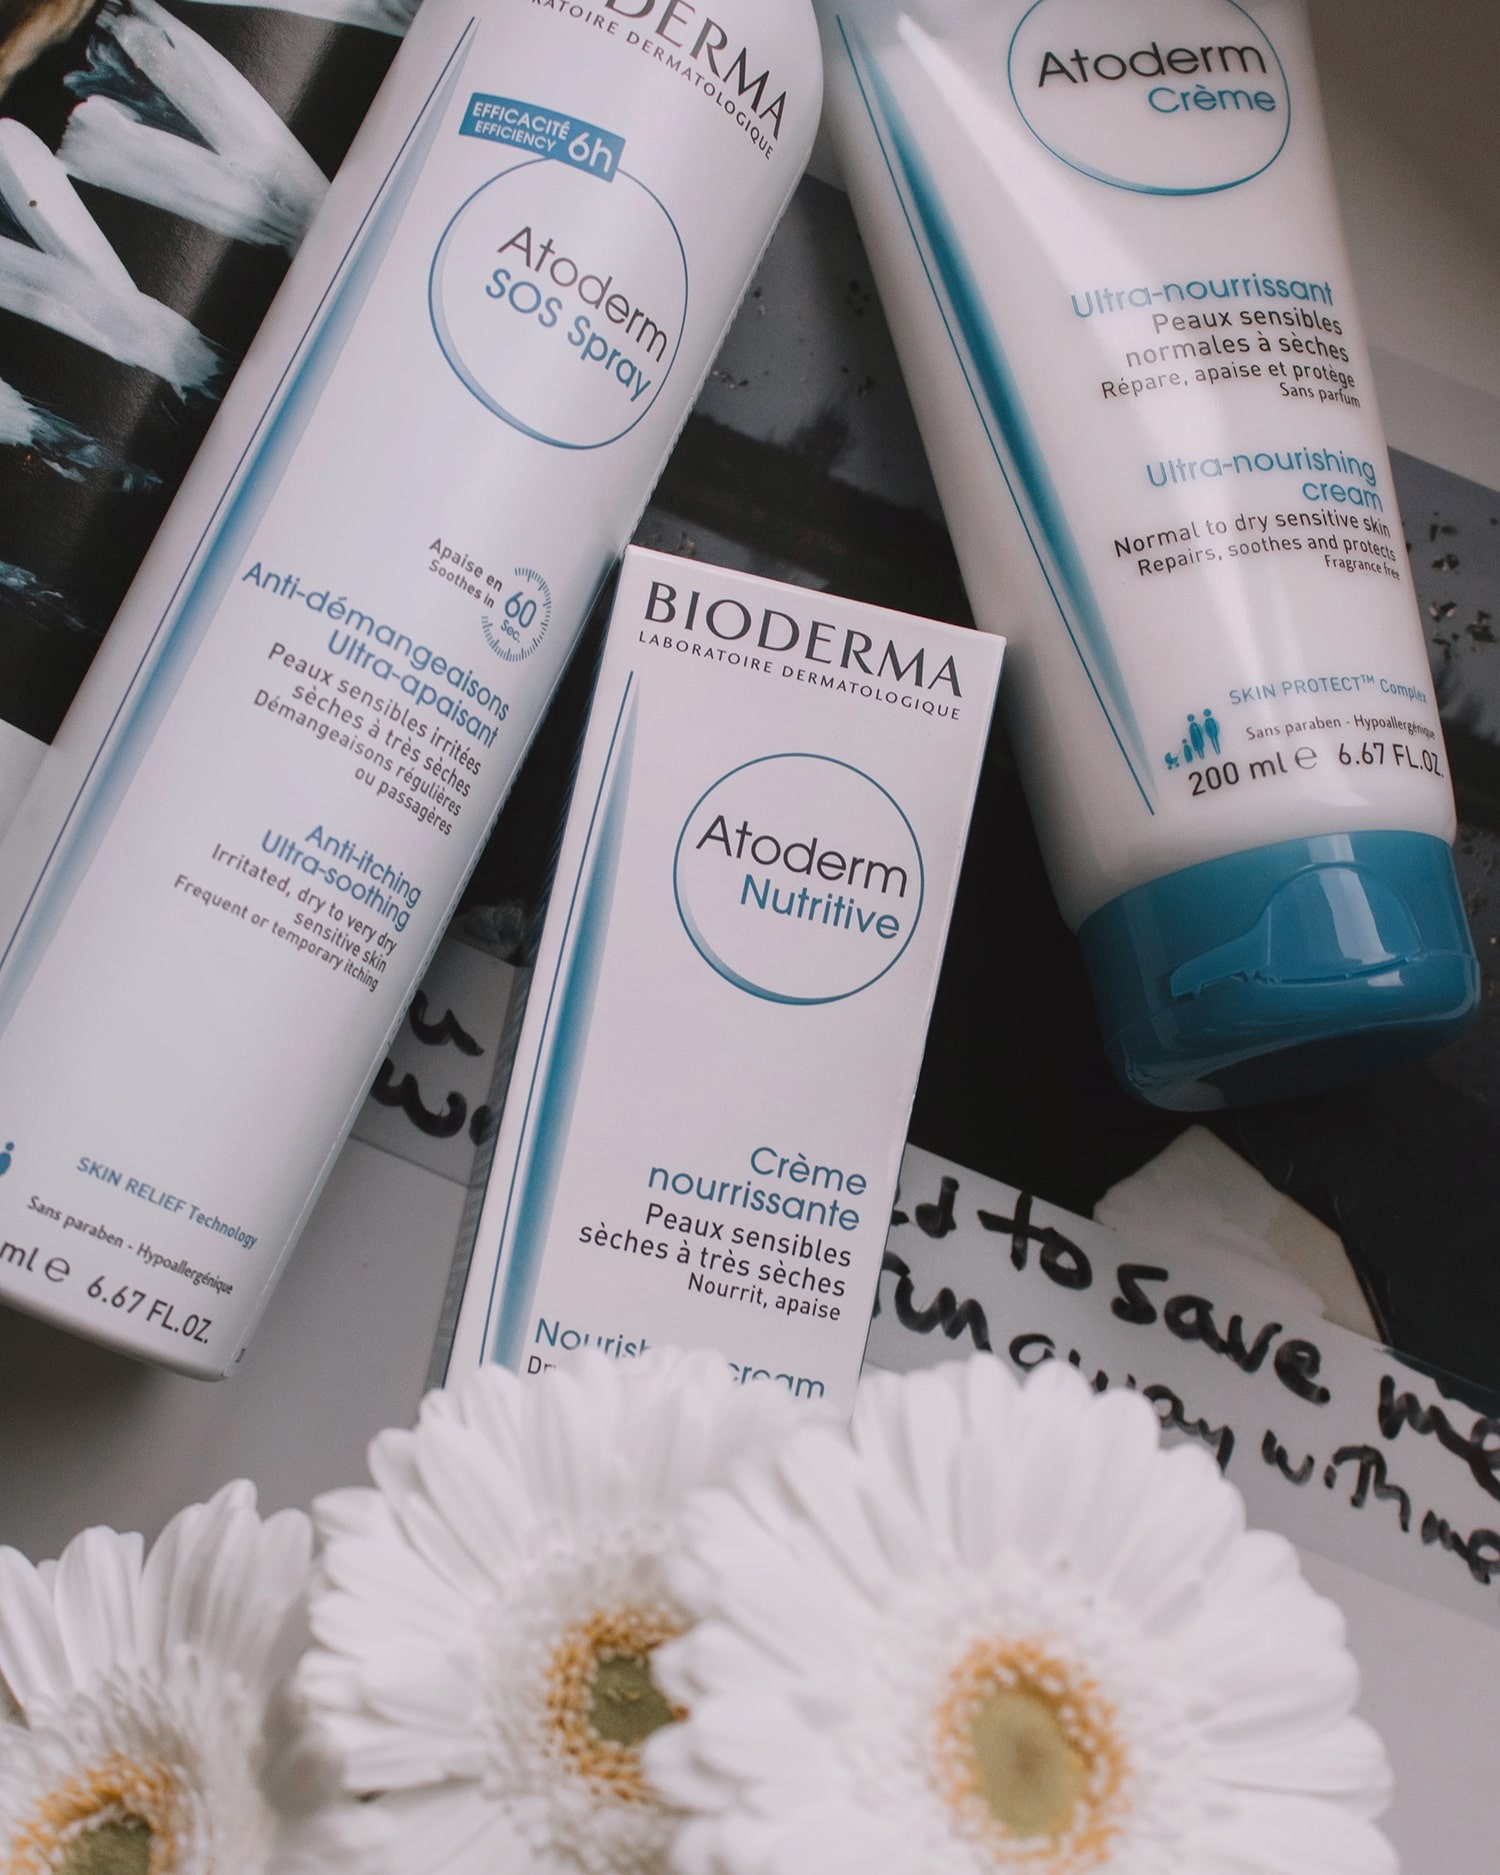 Bioderma Atoderm products